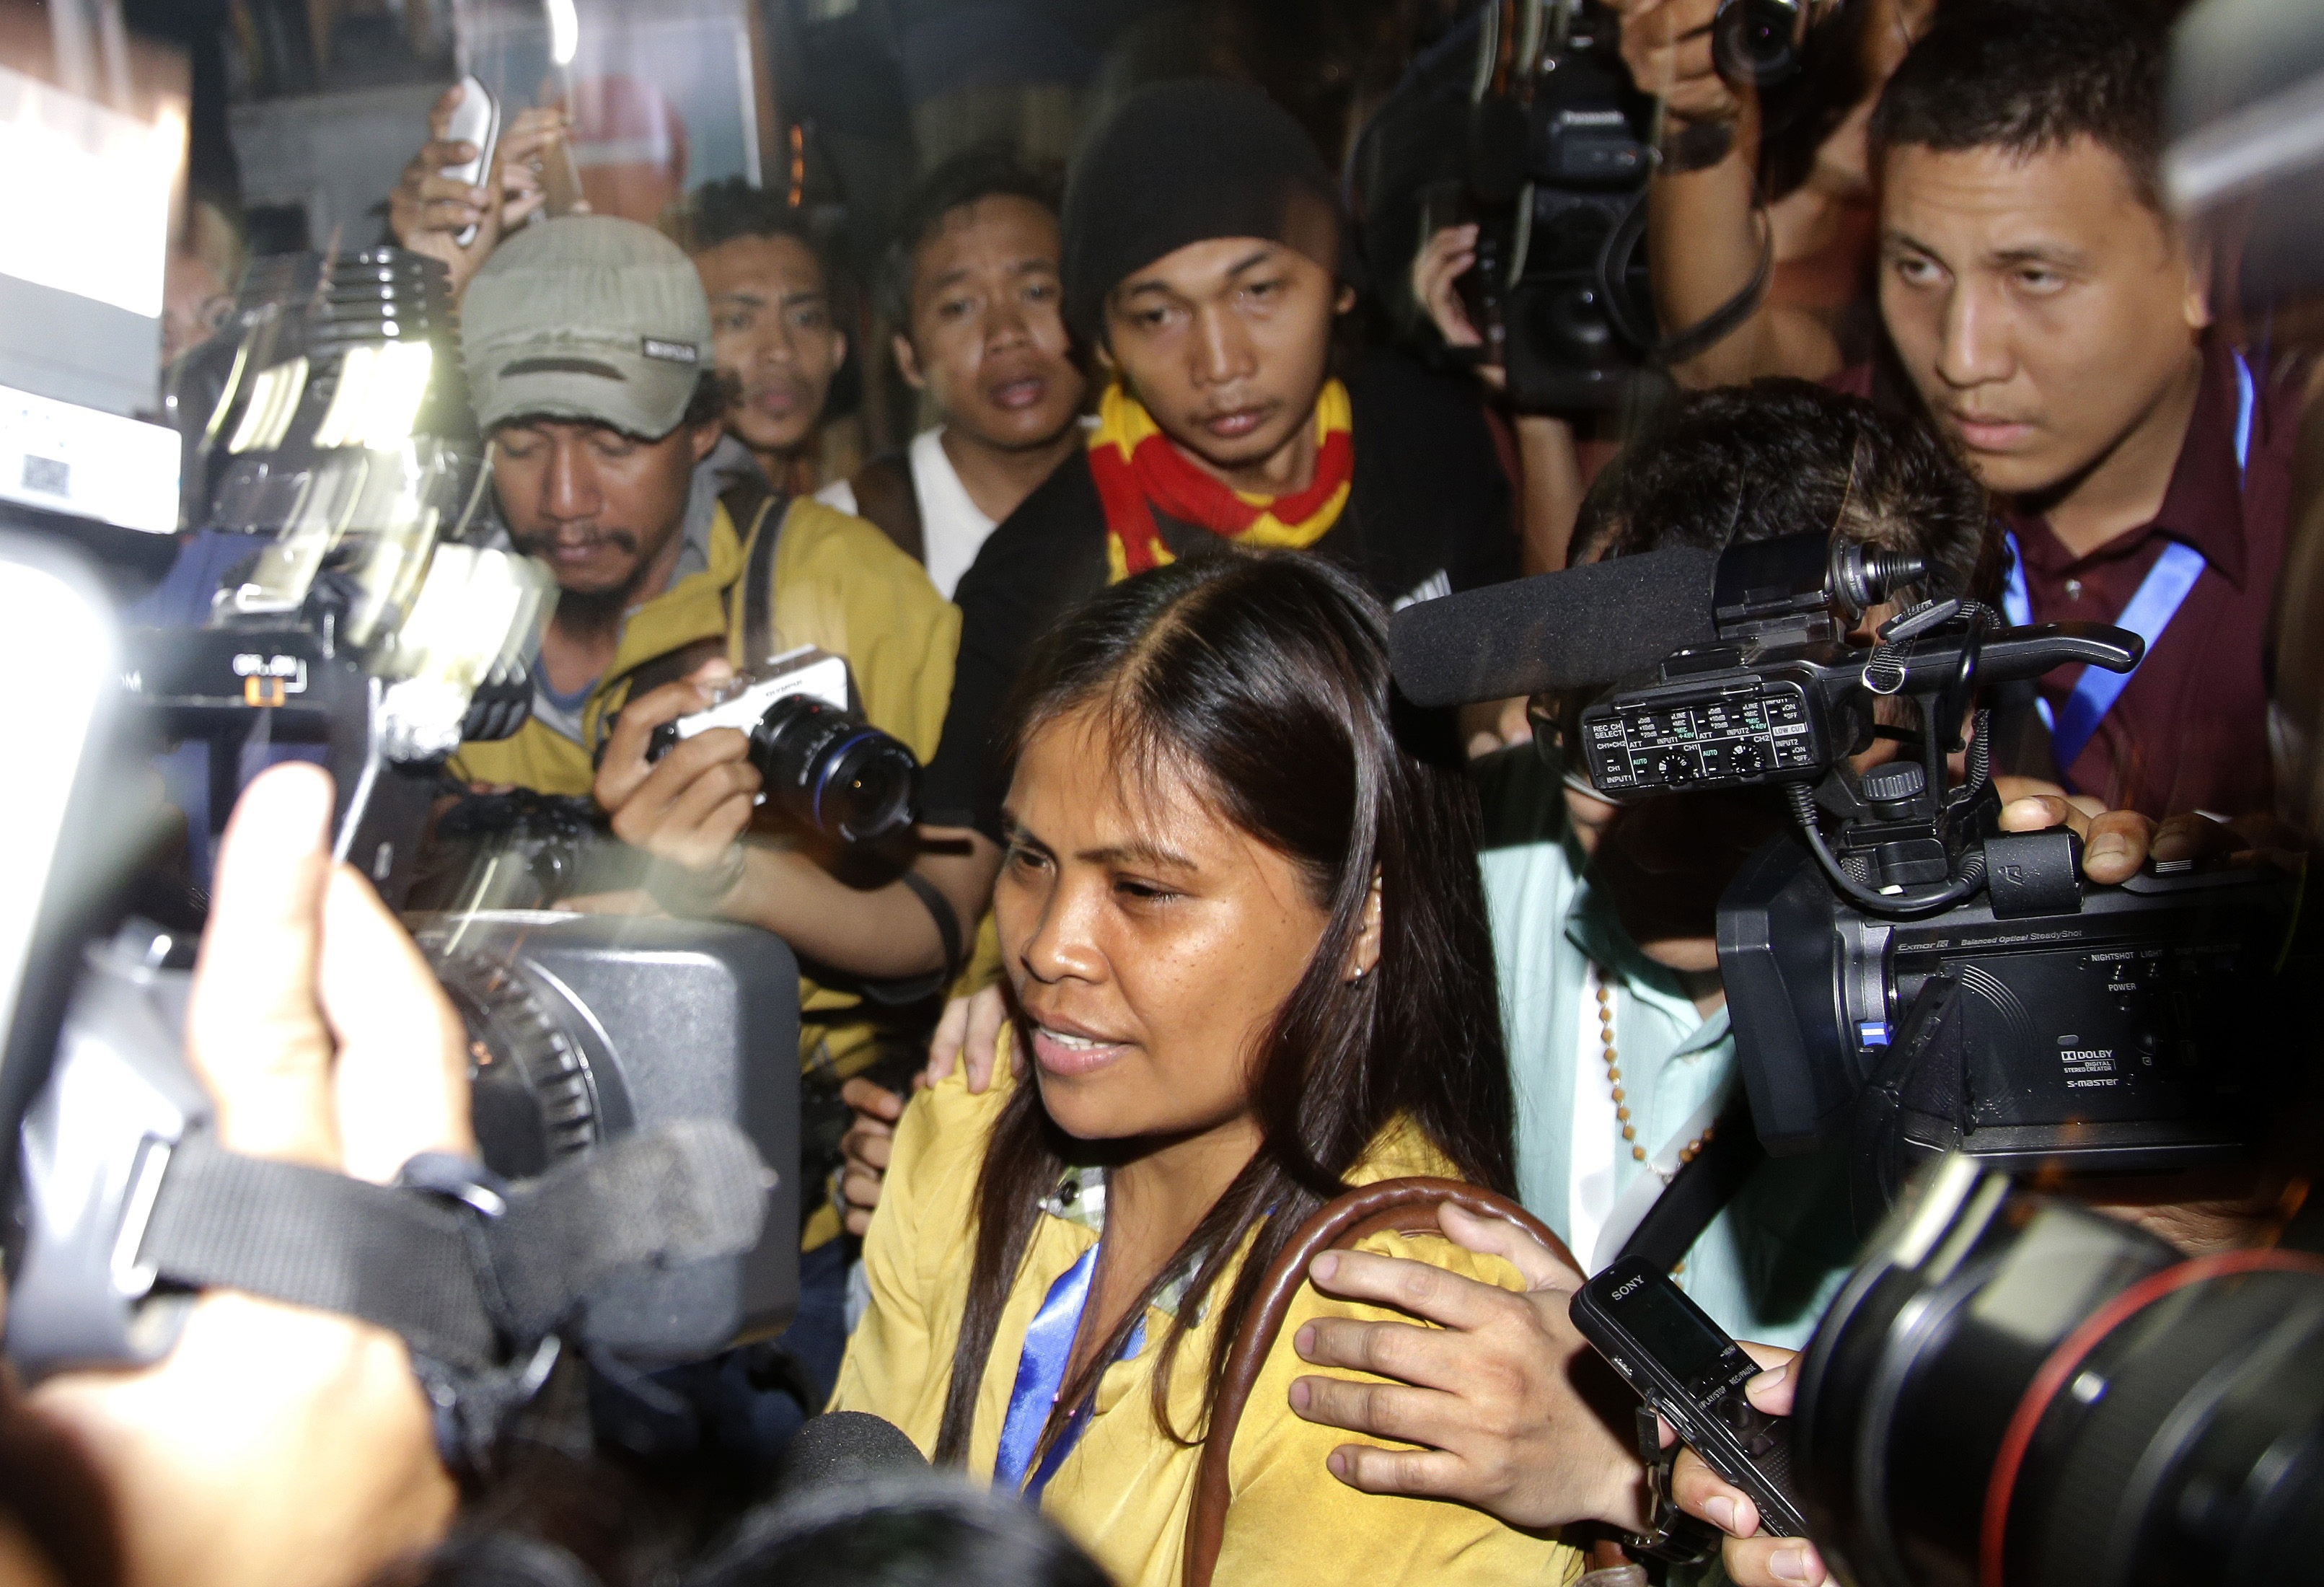 Marites Veloso, front center, sister of Filipina migrant worker on death row for drug offenses Mary Jane Veloso, is surrounded by media at Wijayapura port in Cilacap, Indonesia, after visiting her sister on April 29, 2015